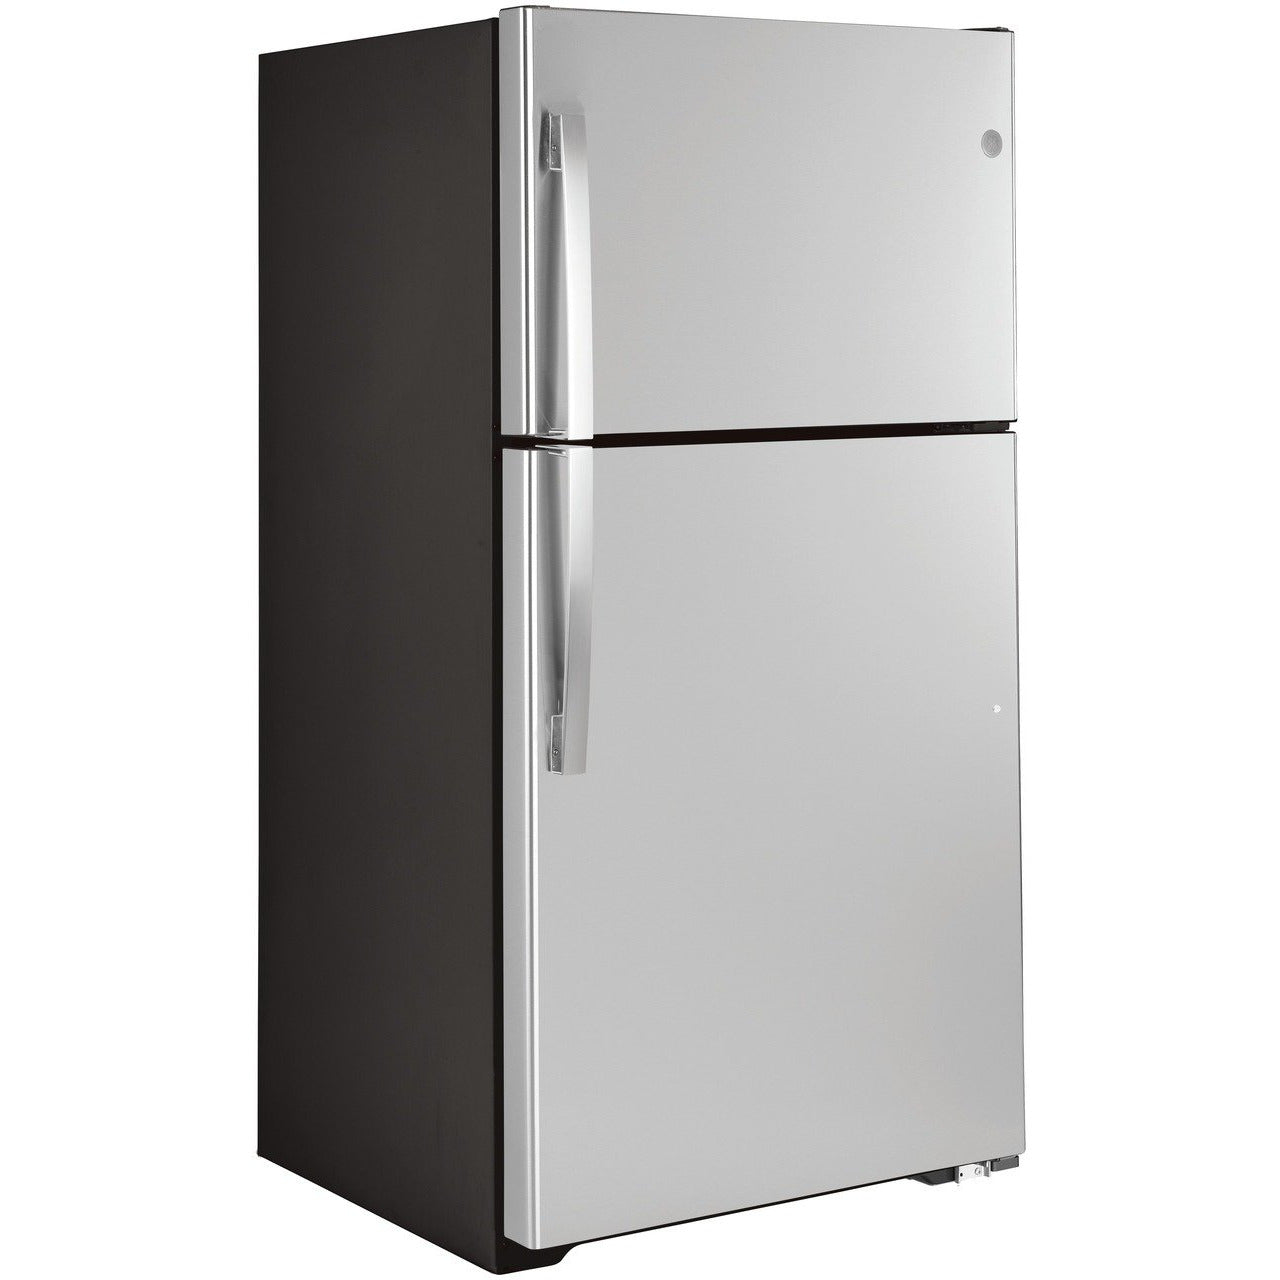 GE® ENERGY STAR® 21.9 Cu. Ft. Top-Freezer Refrigerator - Casa Muebles